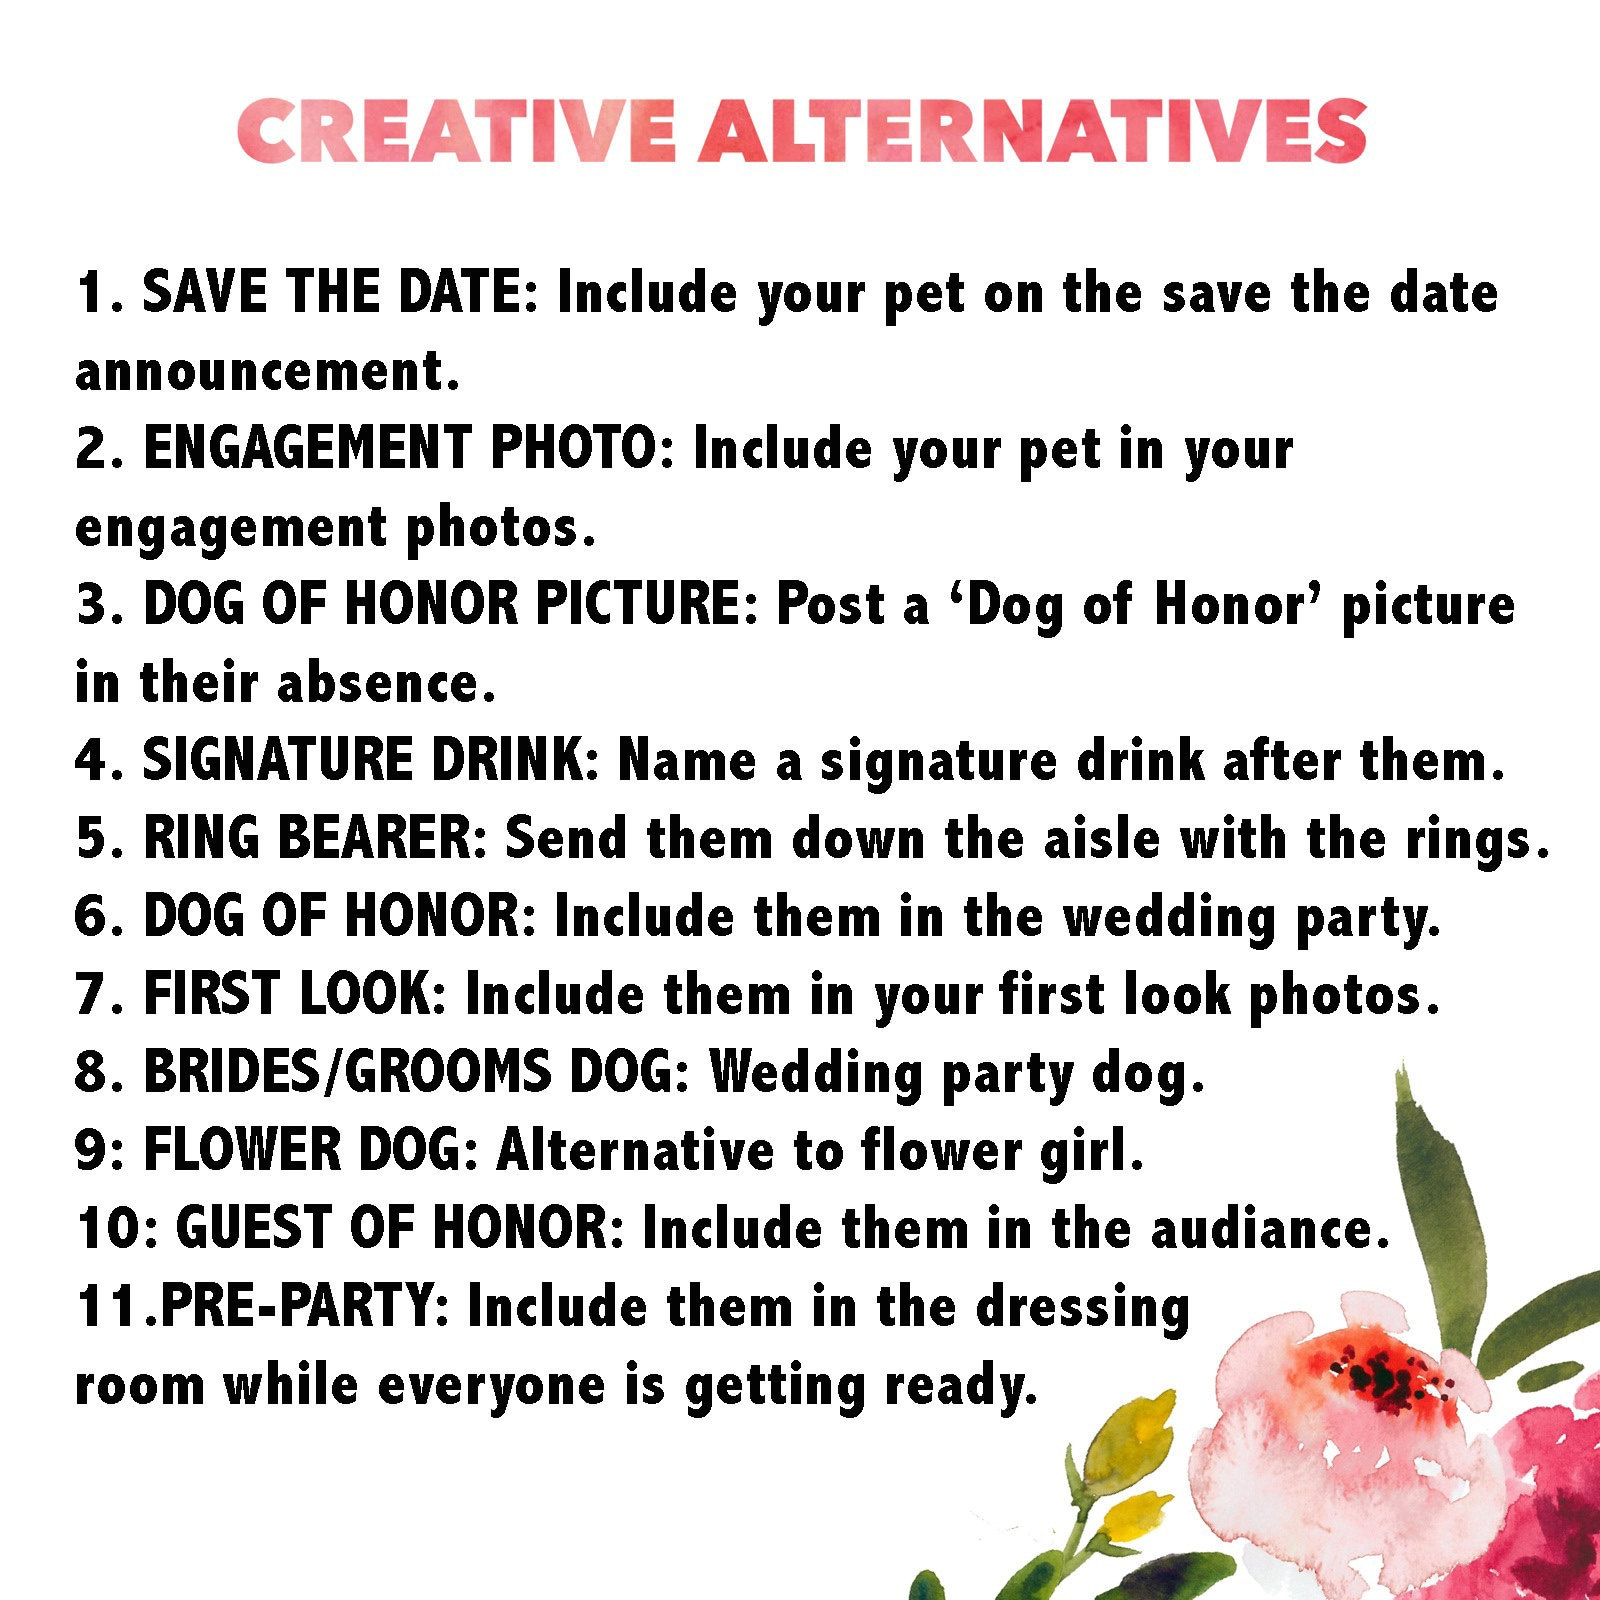 Creative Alternatives